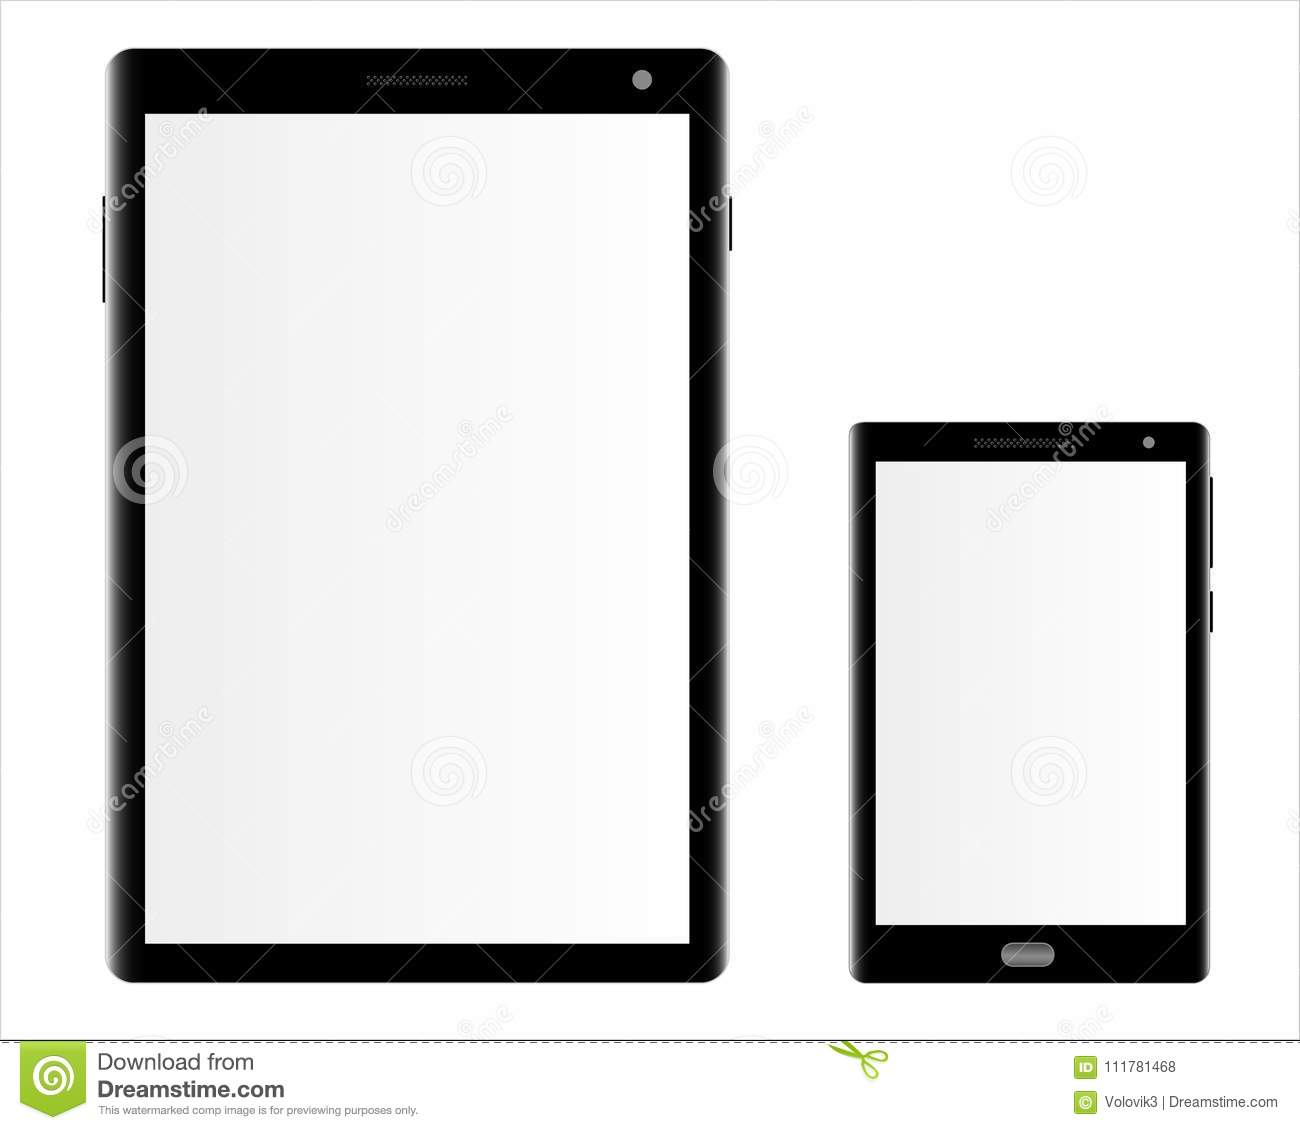 Mockups of a tablet computer and a smartphone on a white background.